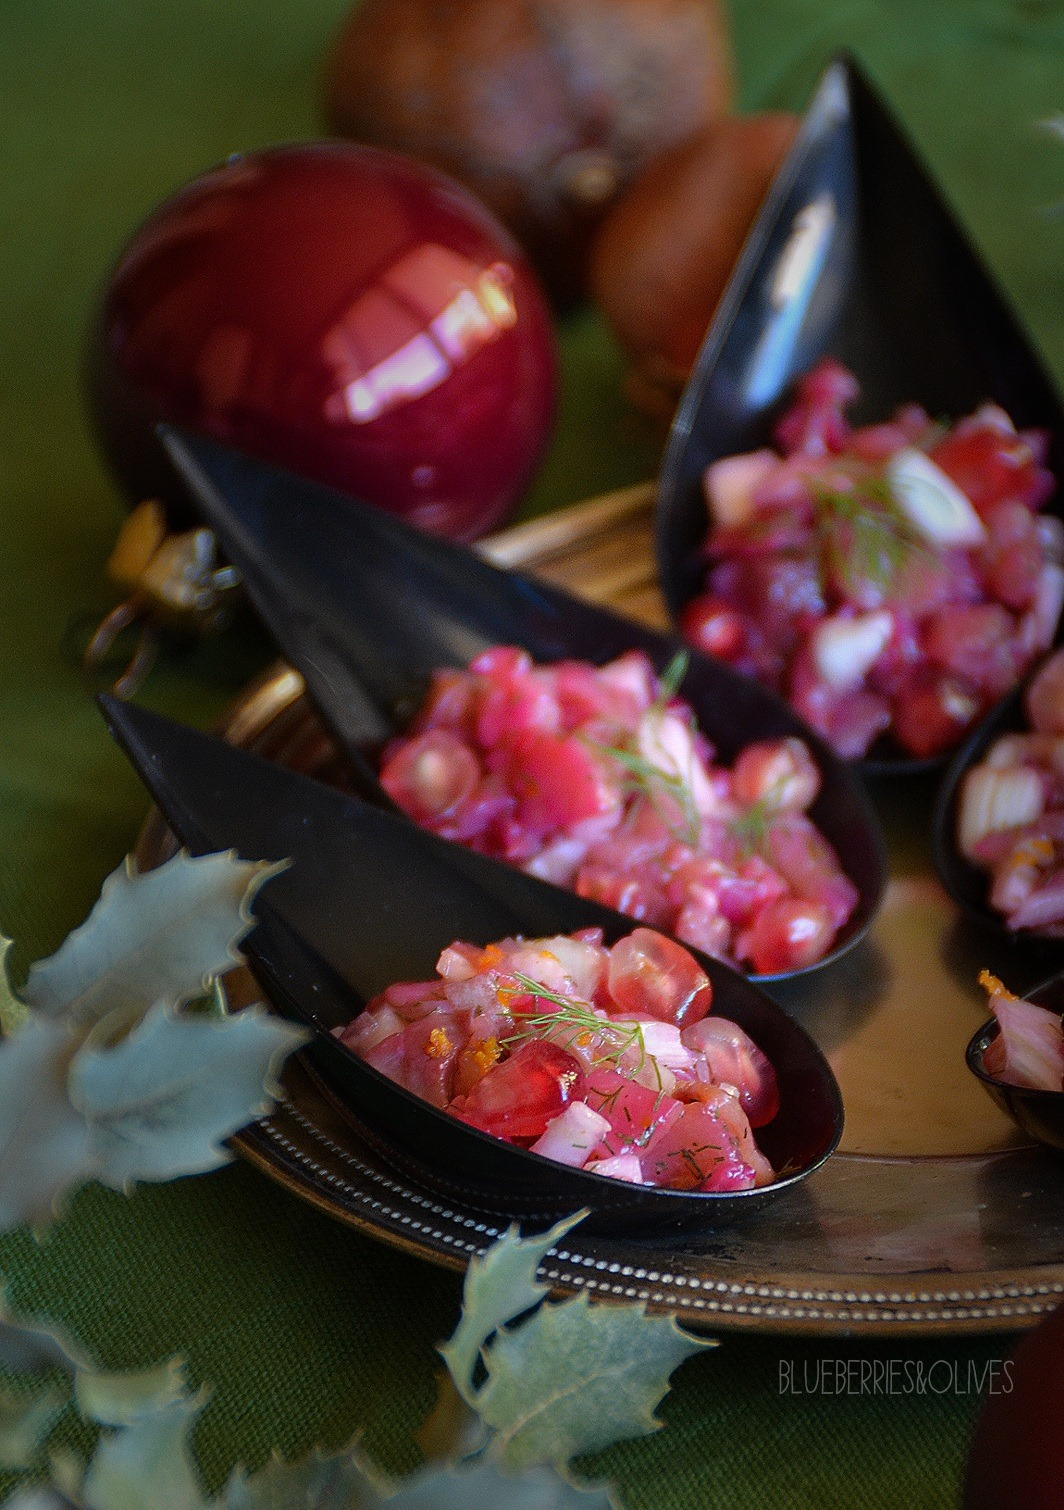 APPETIZER ON A SPOON WITH SALMON, FENNEL AND POMEGRANATE